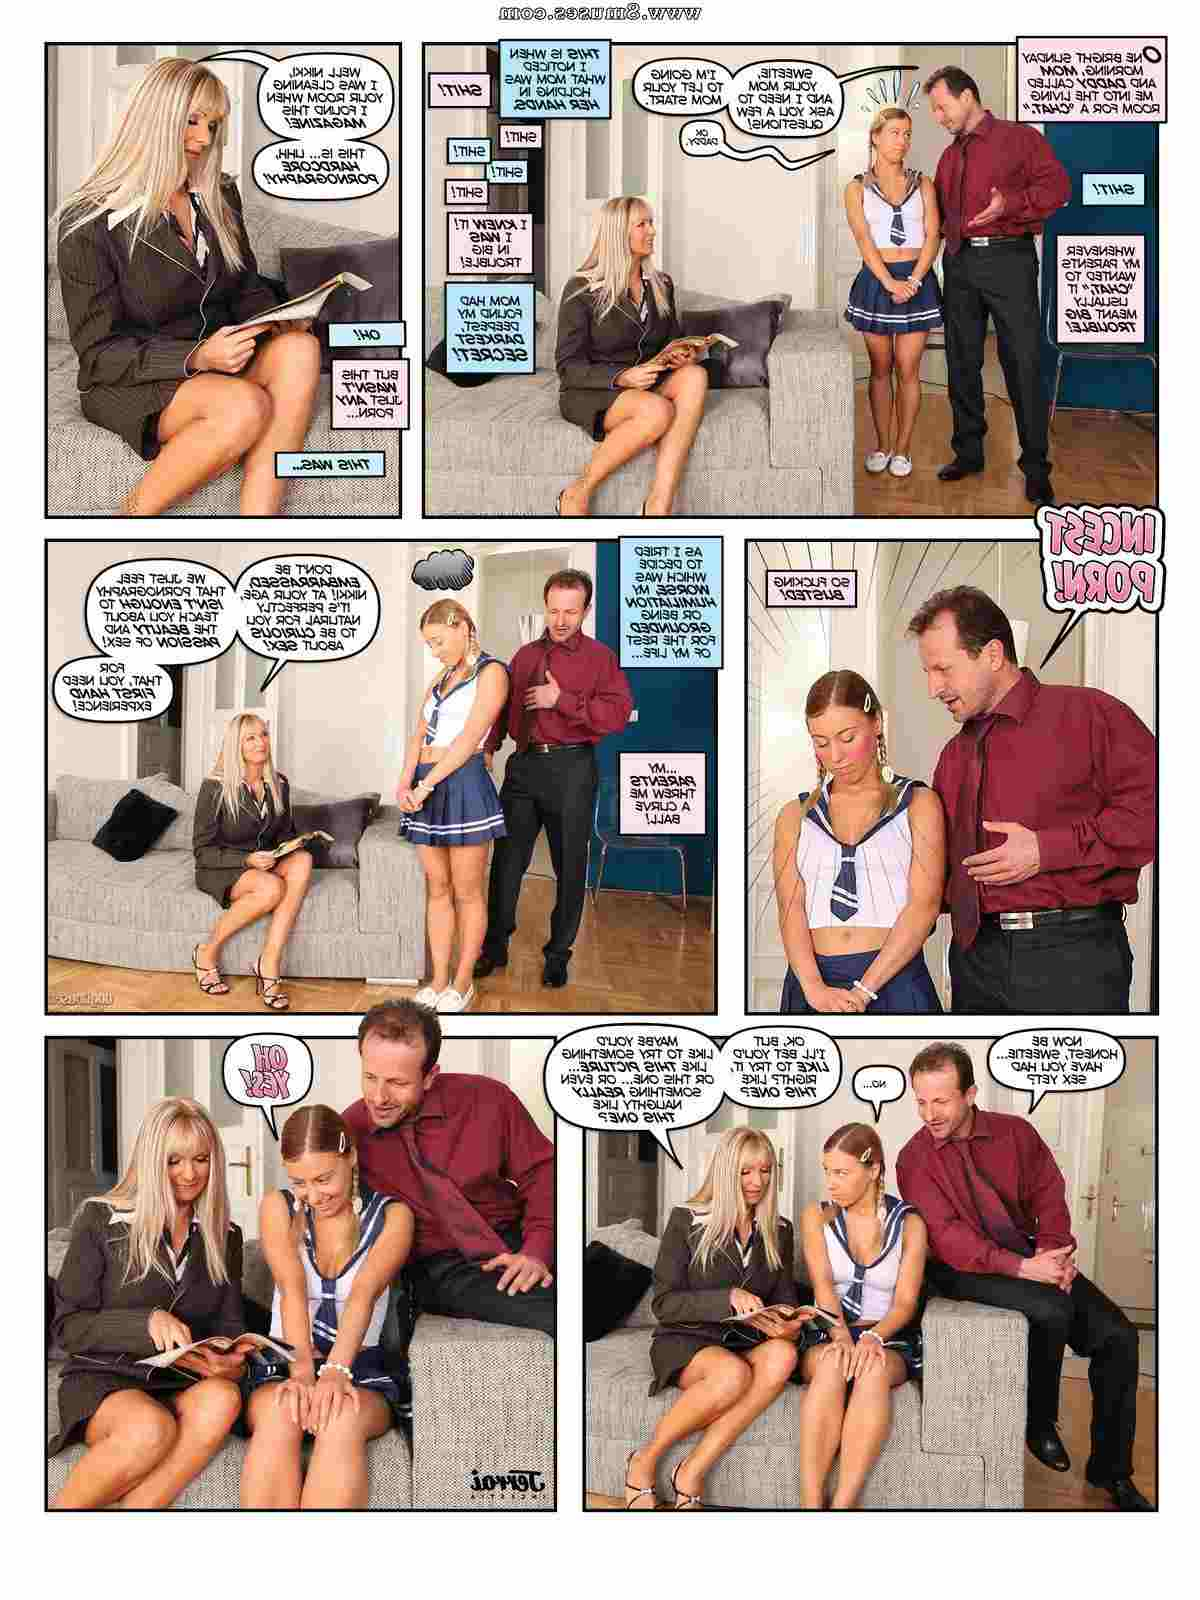 Incest Candy Vol9 Perverted Daughter Ics Cloudy Girl Pics